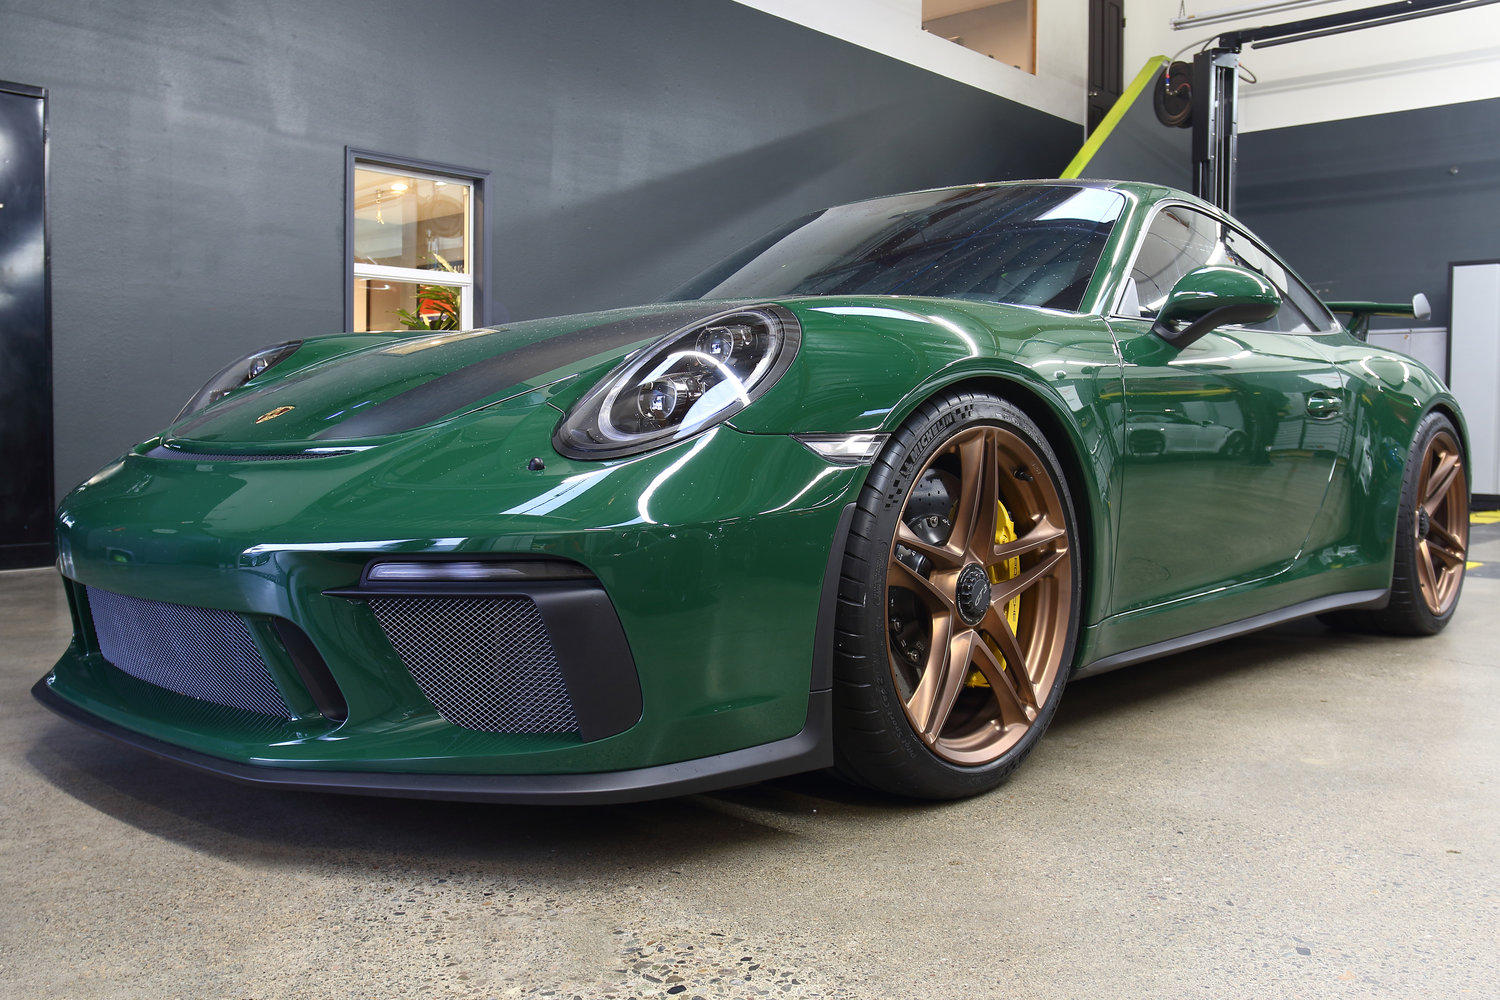 Wheel Wednesday Feature British Racing Green Porsche 991 2 Gt3 With Hre P207 Centerlock Wheels Bbi Autosport